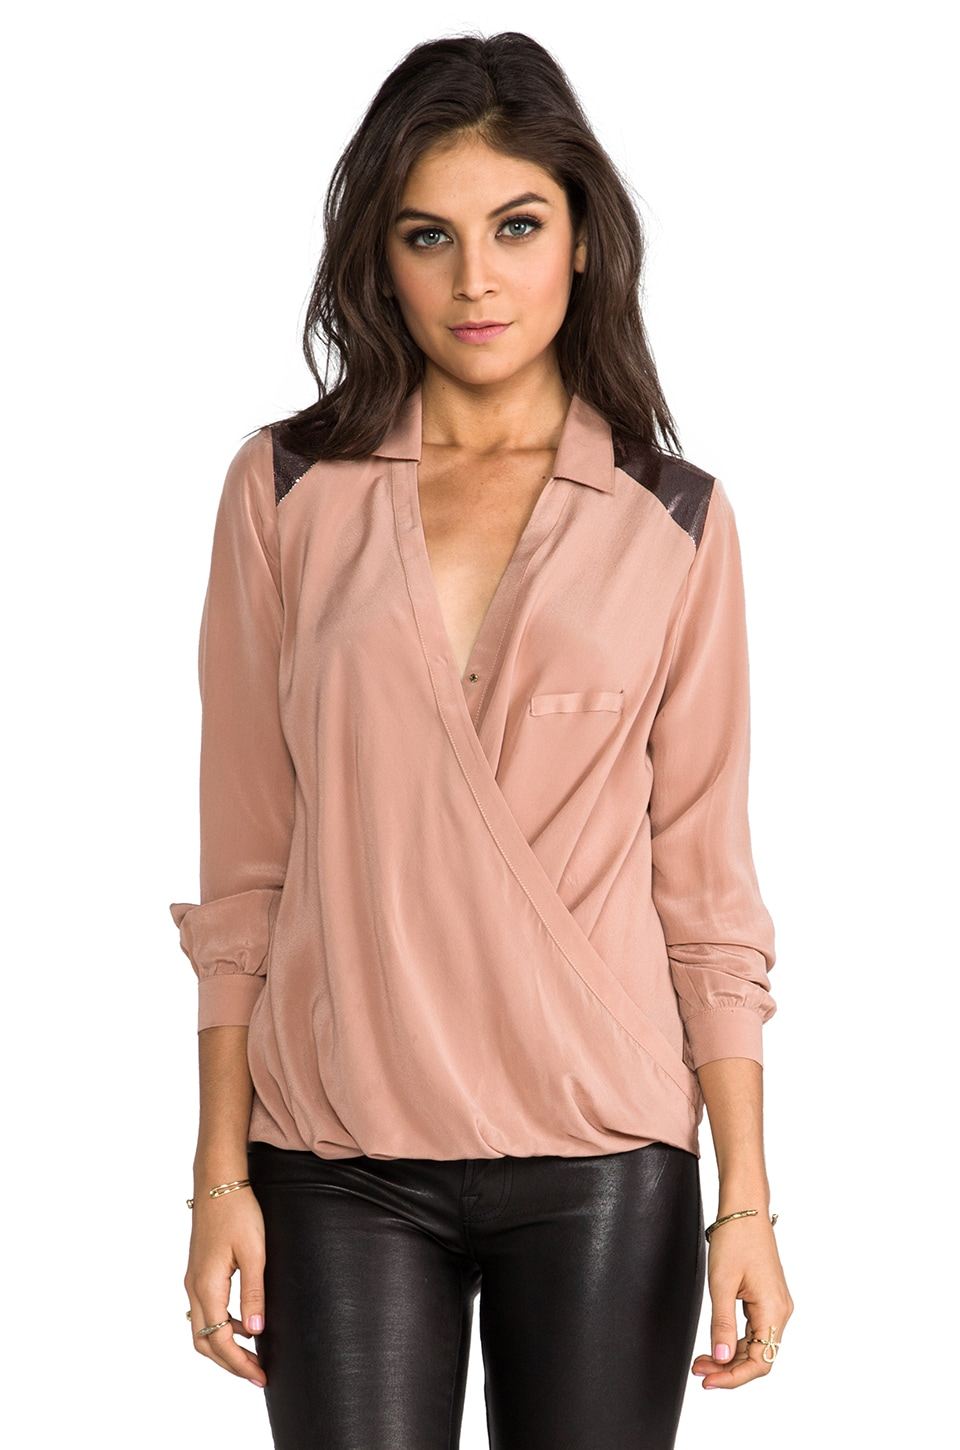 HEARTLOOM Heidi Wrap Top in Boudoir